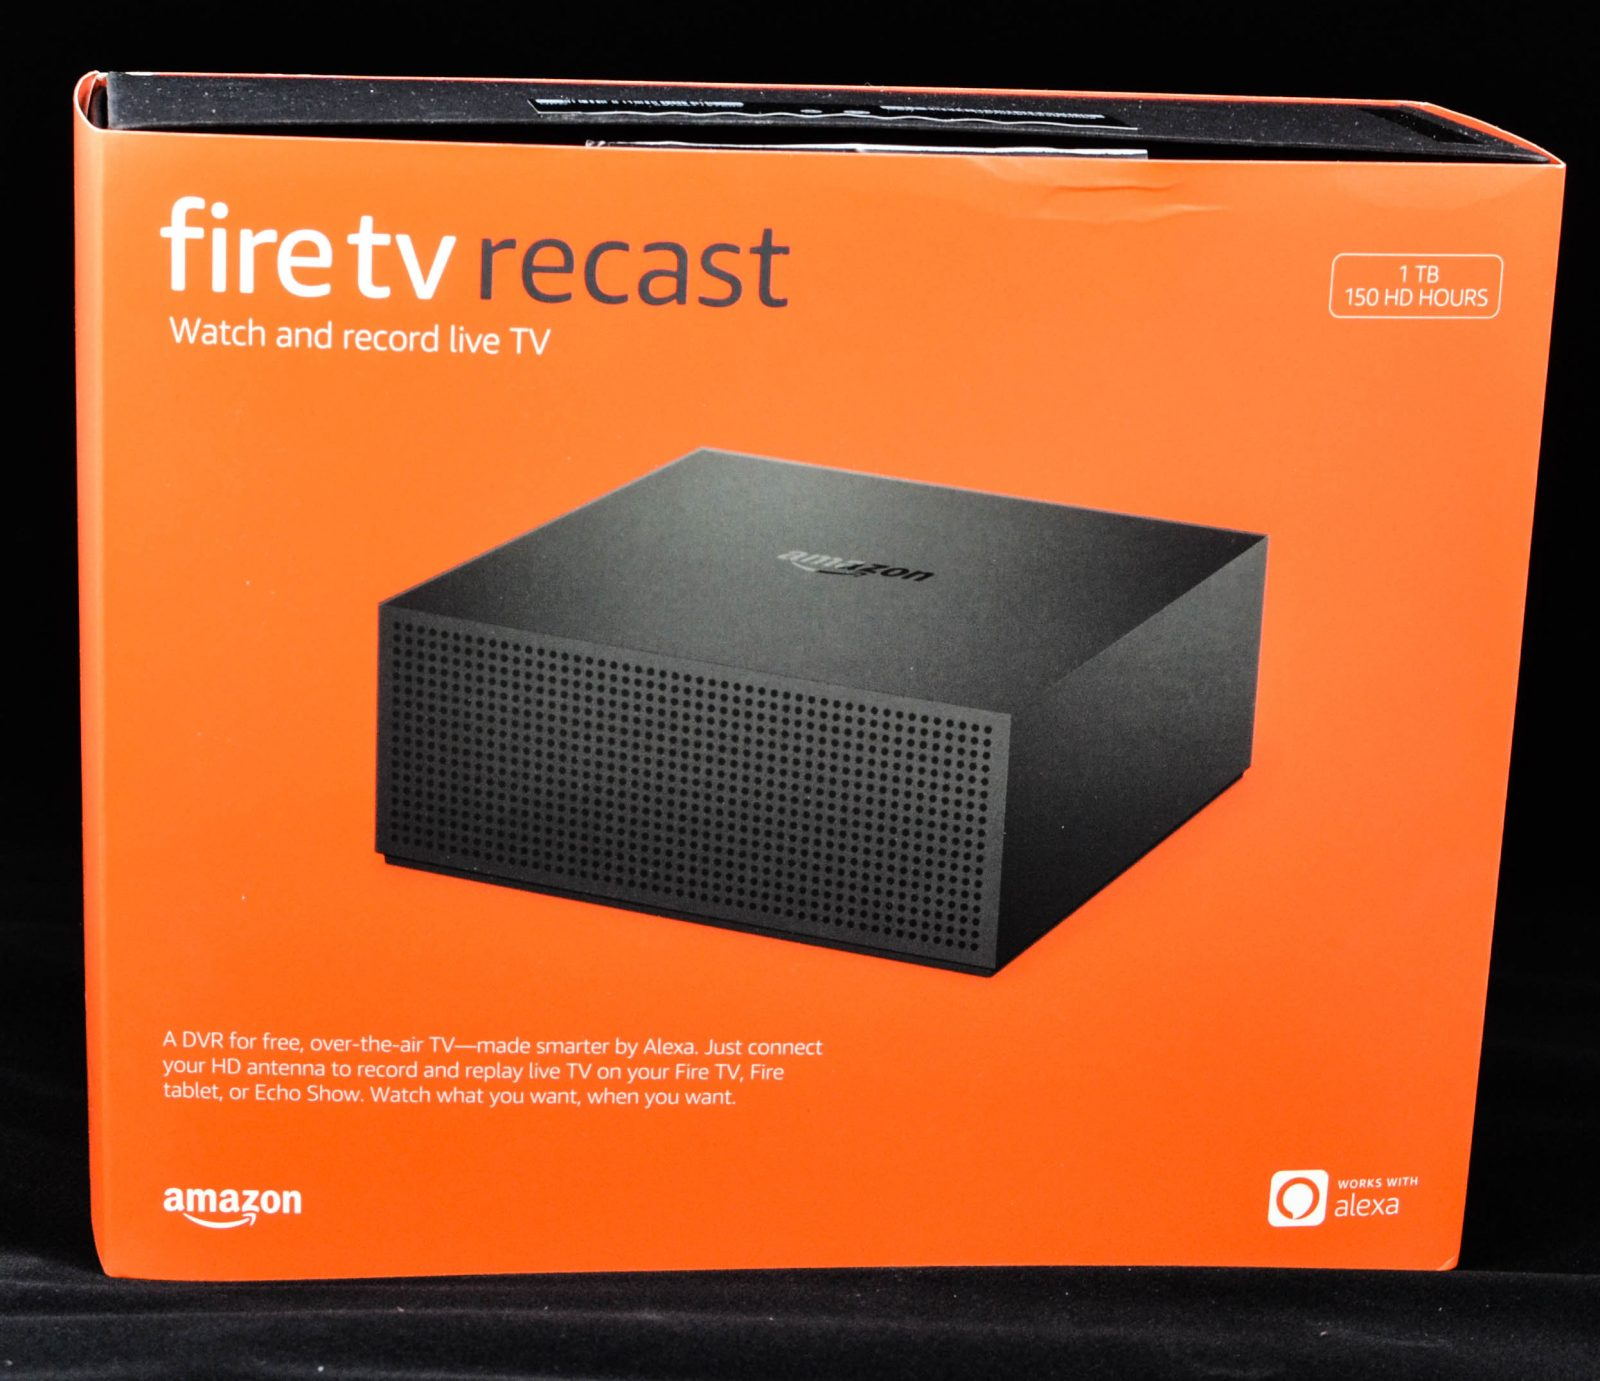 Amazon Fire Tv Recast On A Boat Panbo